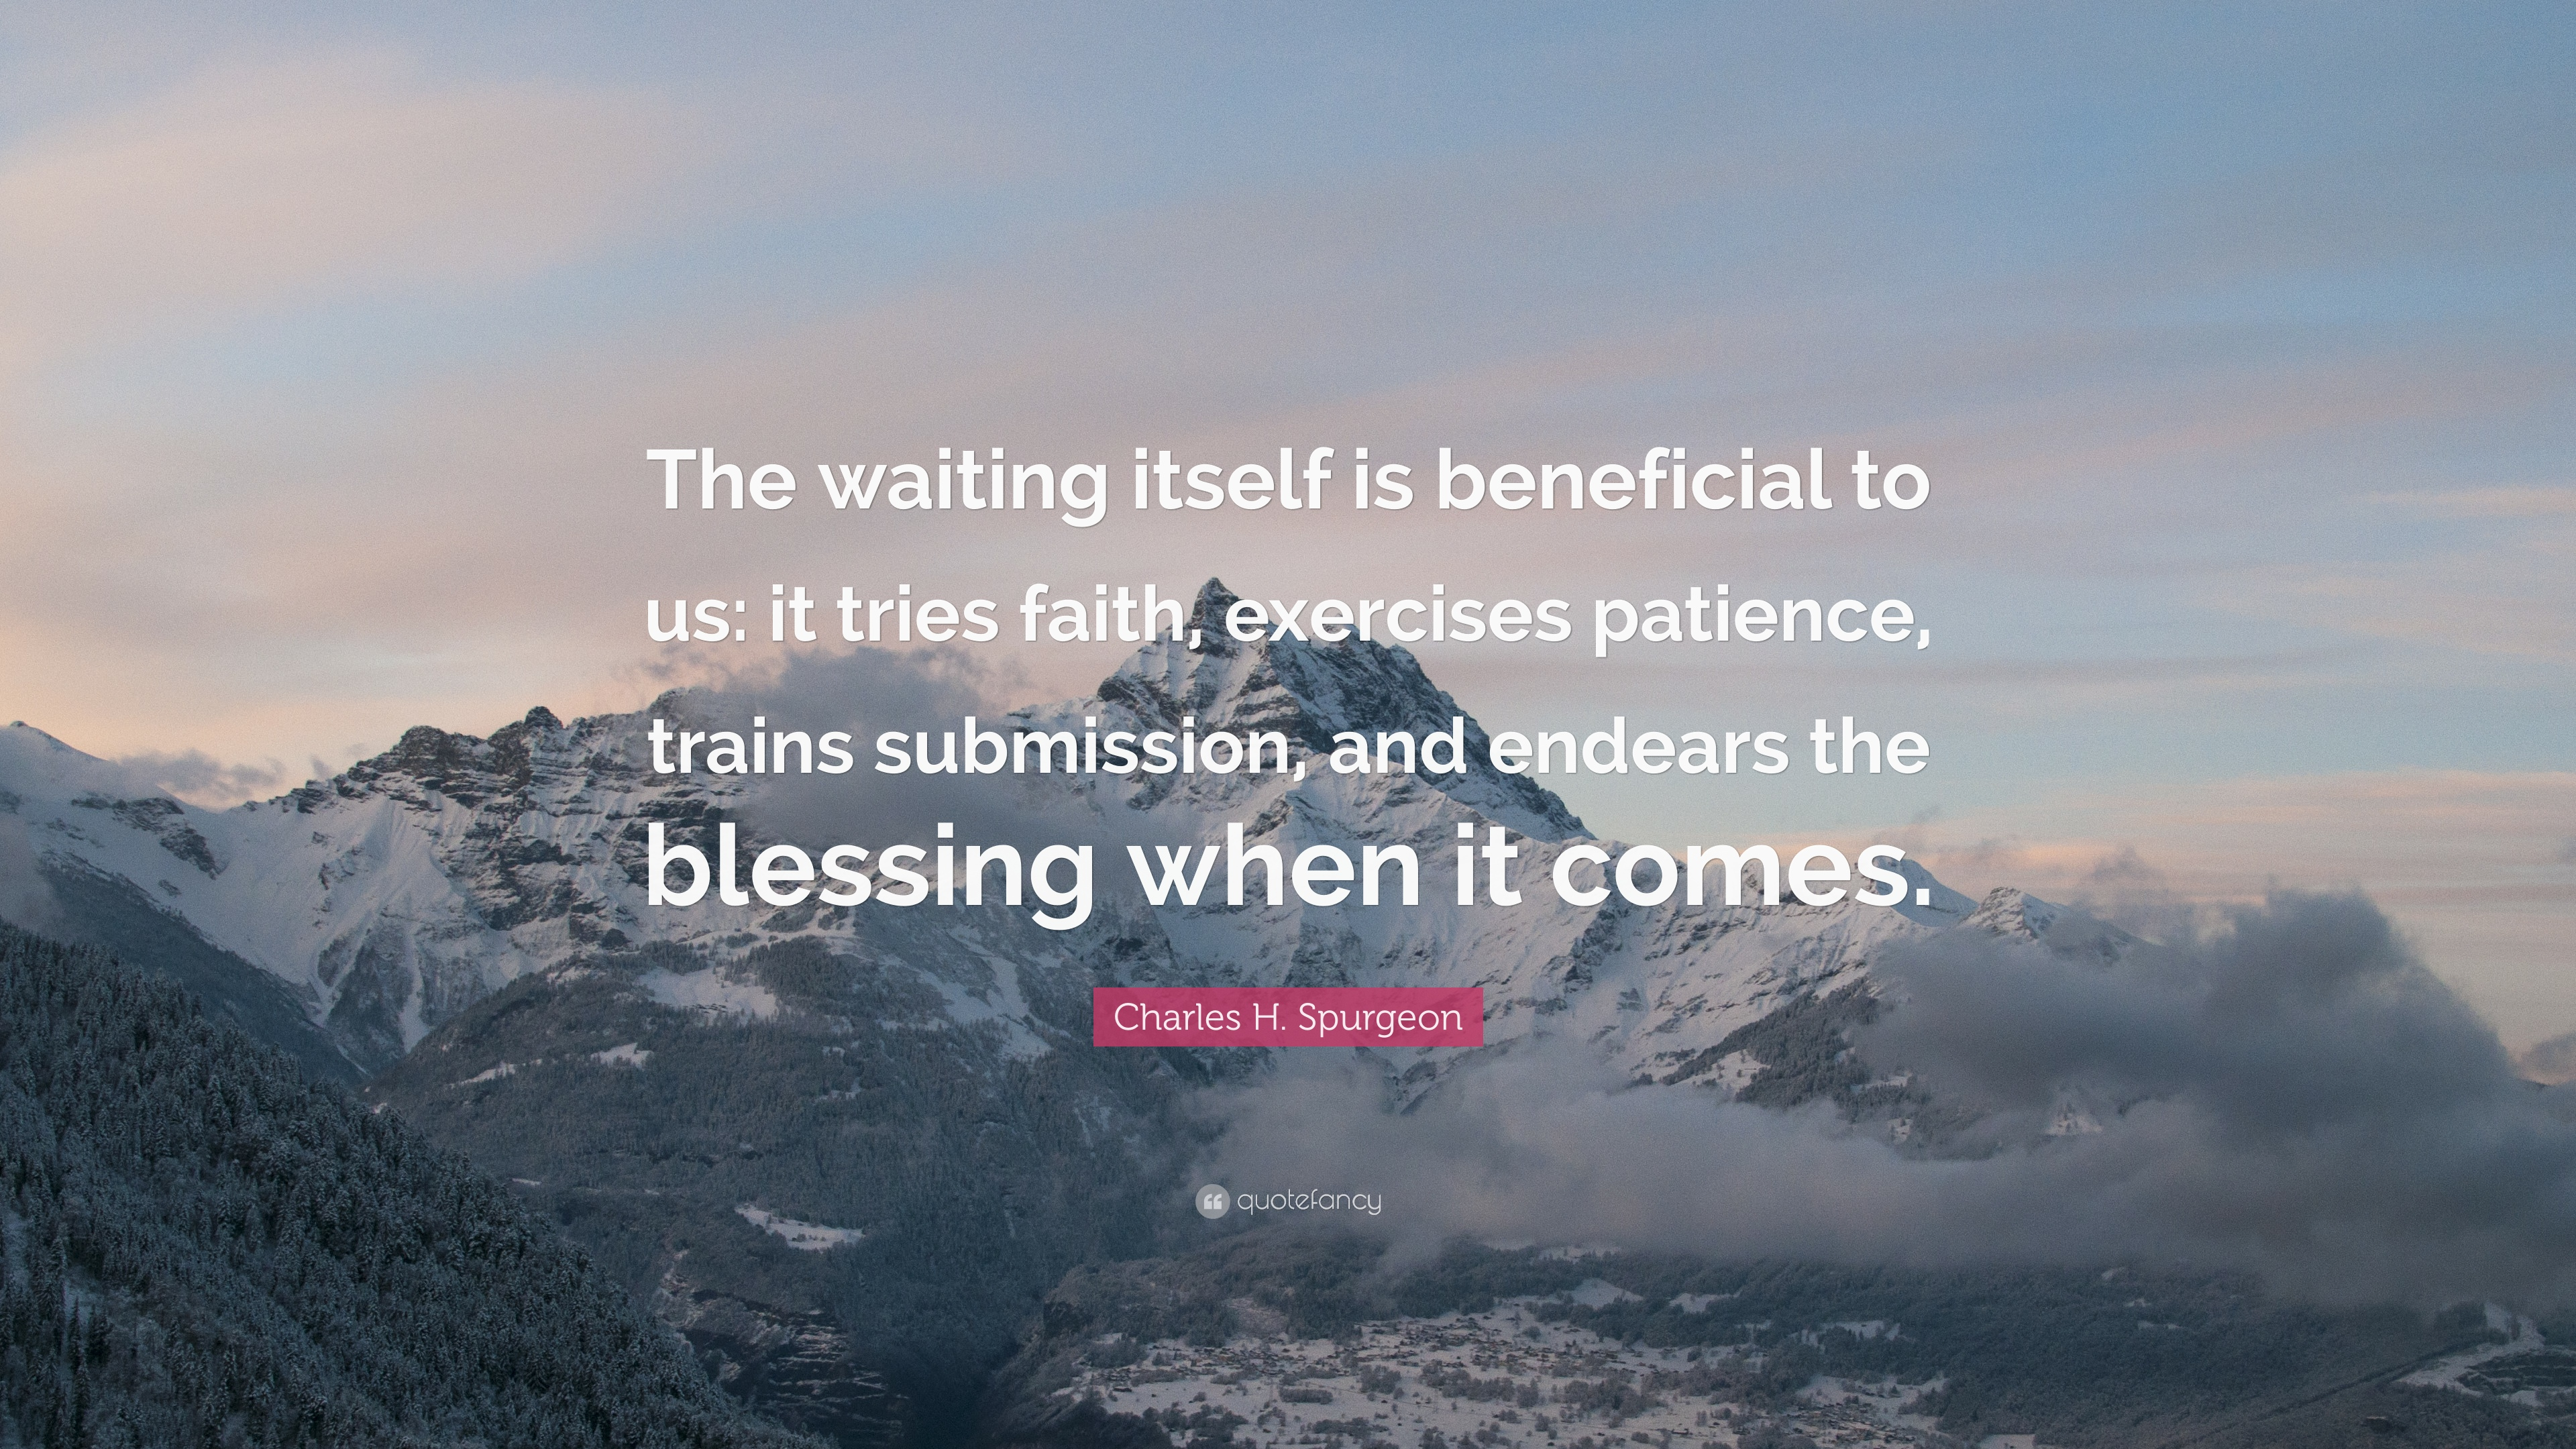 Charles H Spurgeon Quote The Waiting Itself Is Beneficial To Us